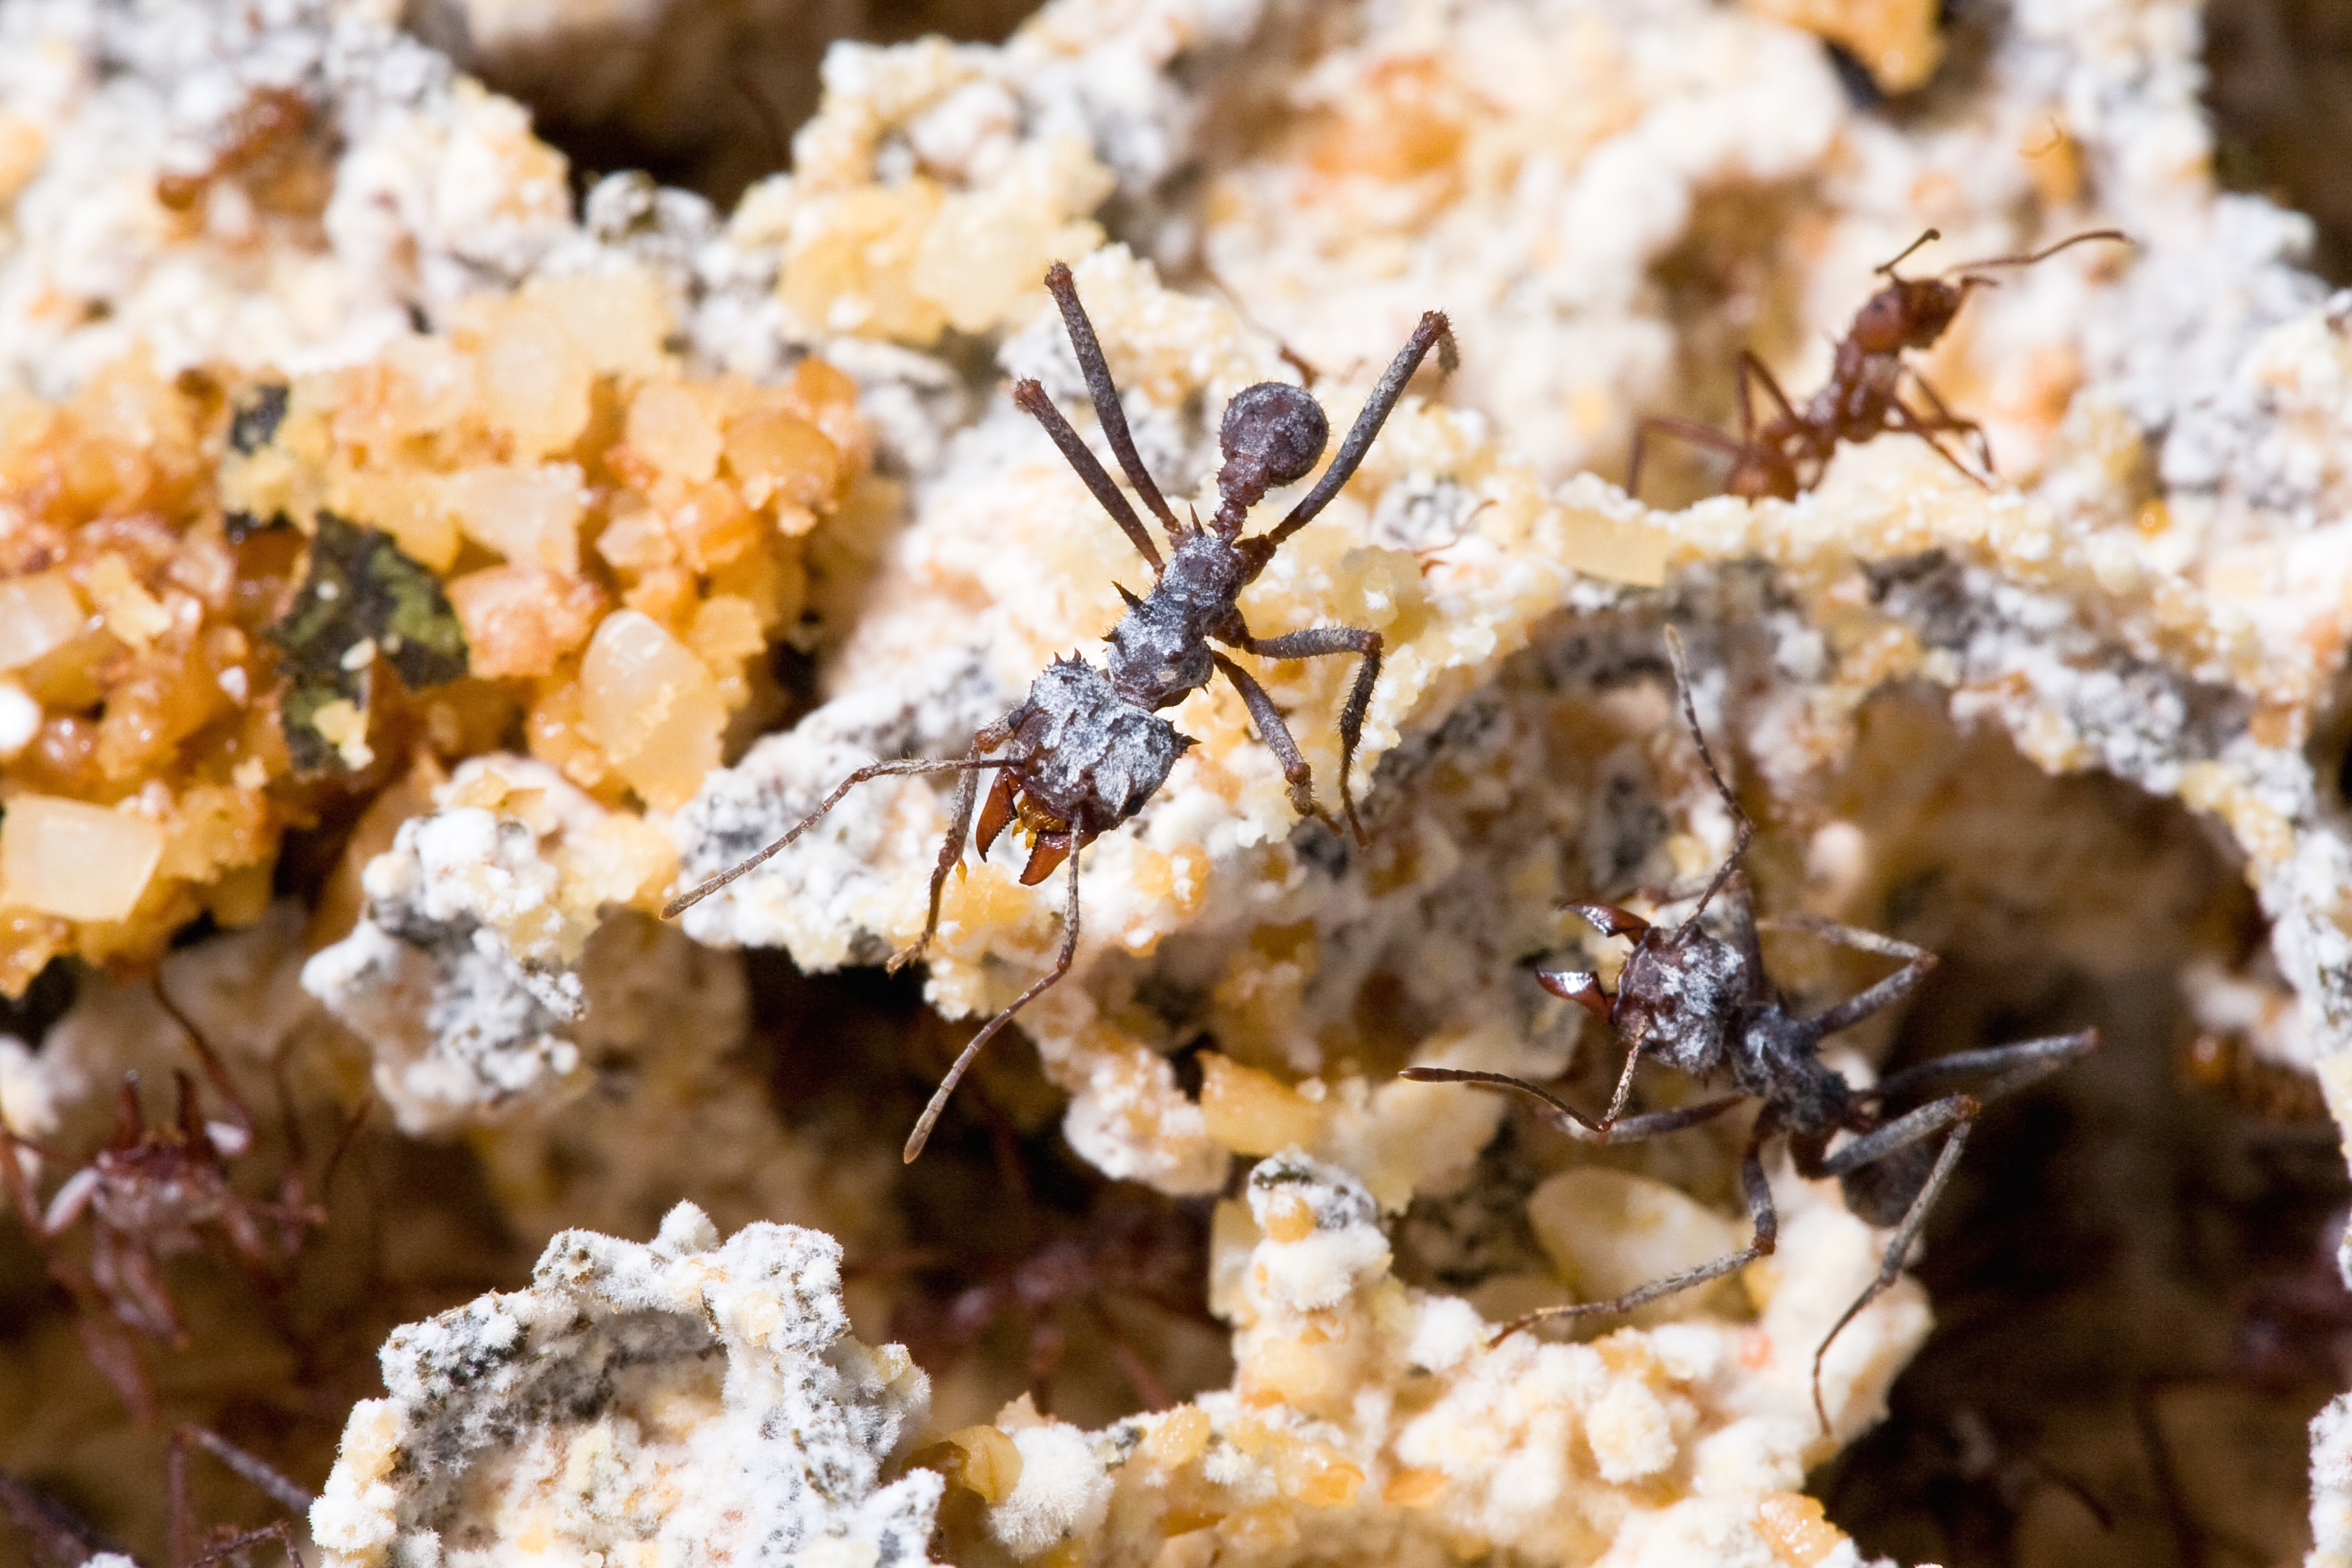 leaf cutter ants and fungus relationship quizzes